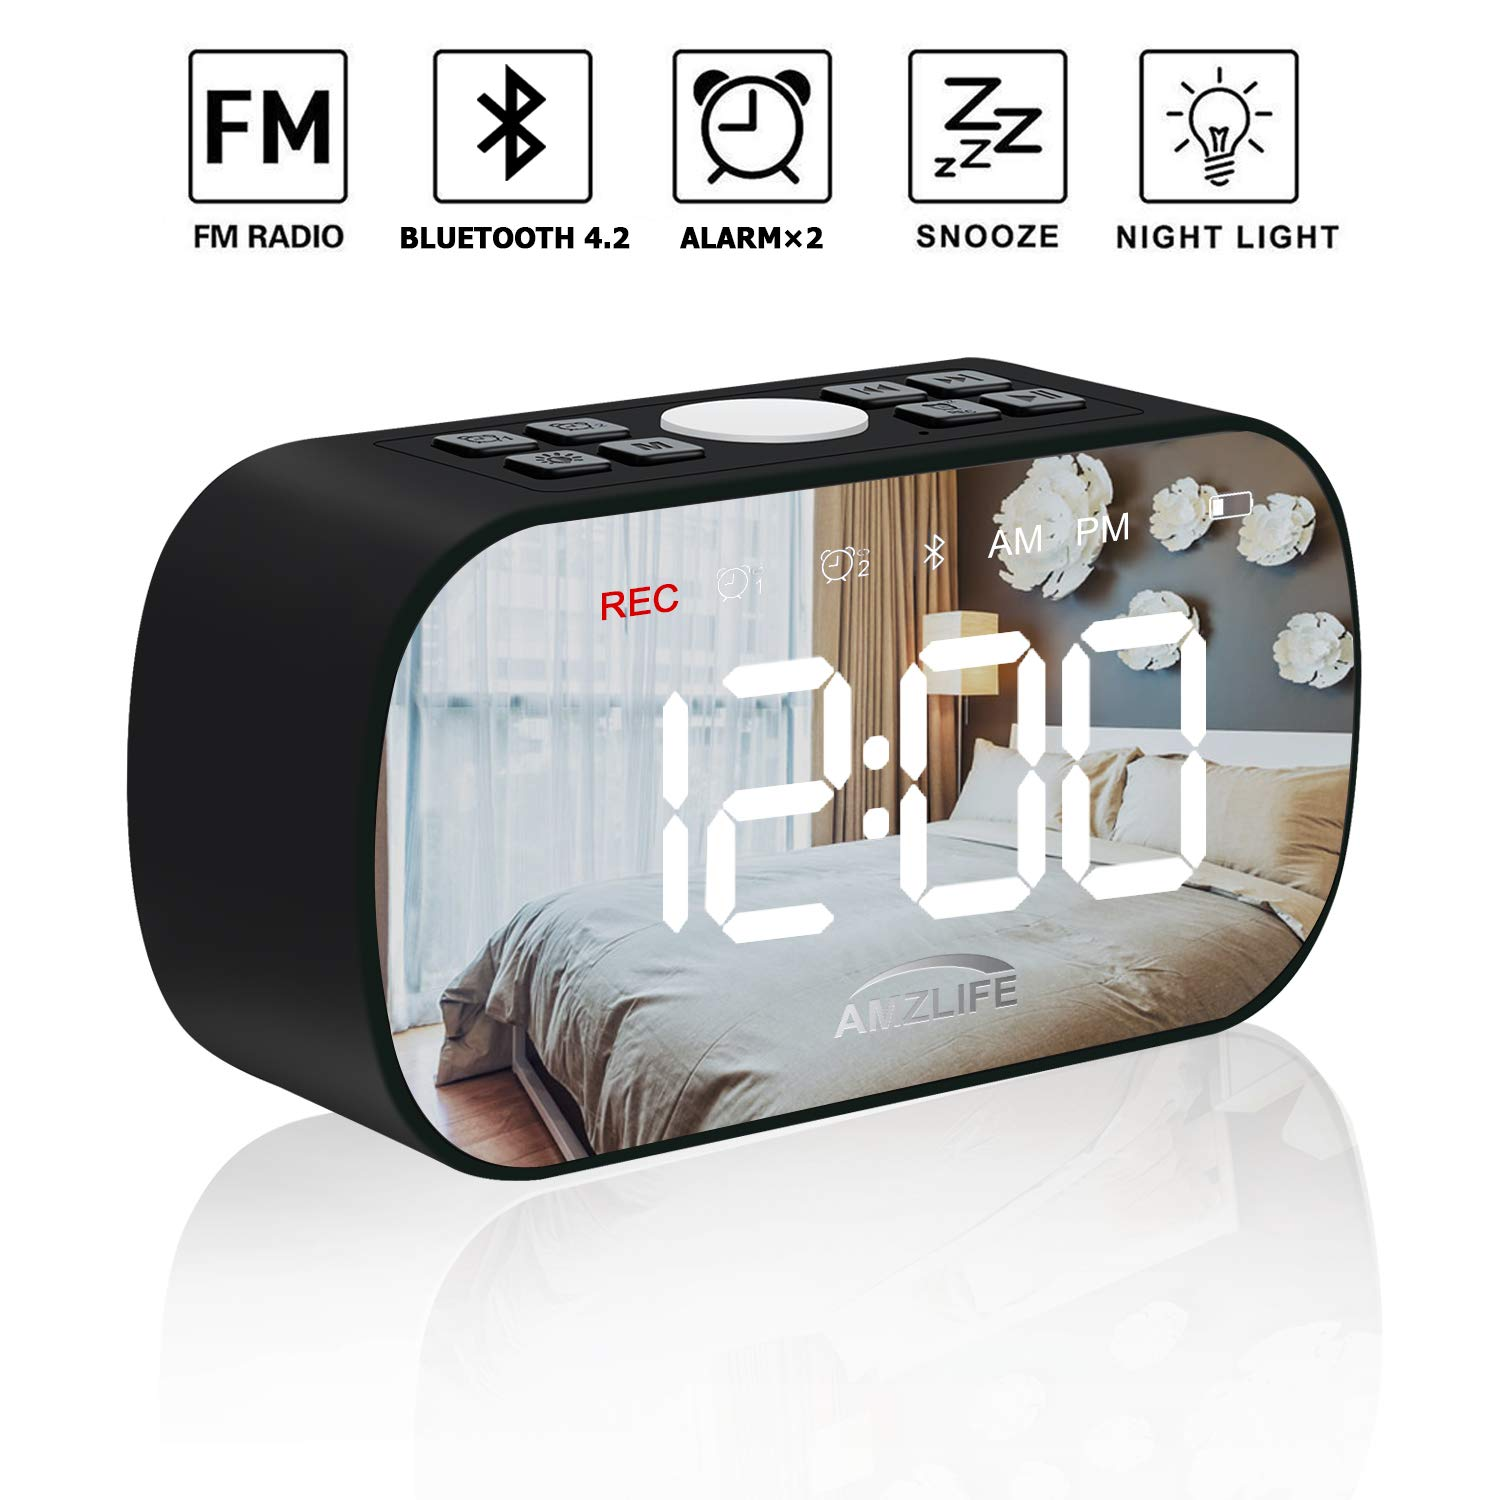 Top 9 Best Sounding Clock Radio On The Market - Buyer's Guide 31